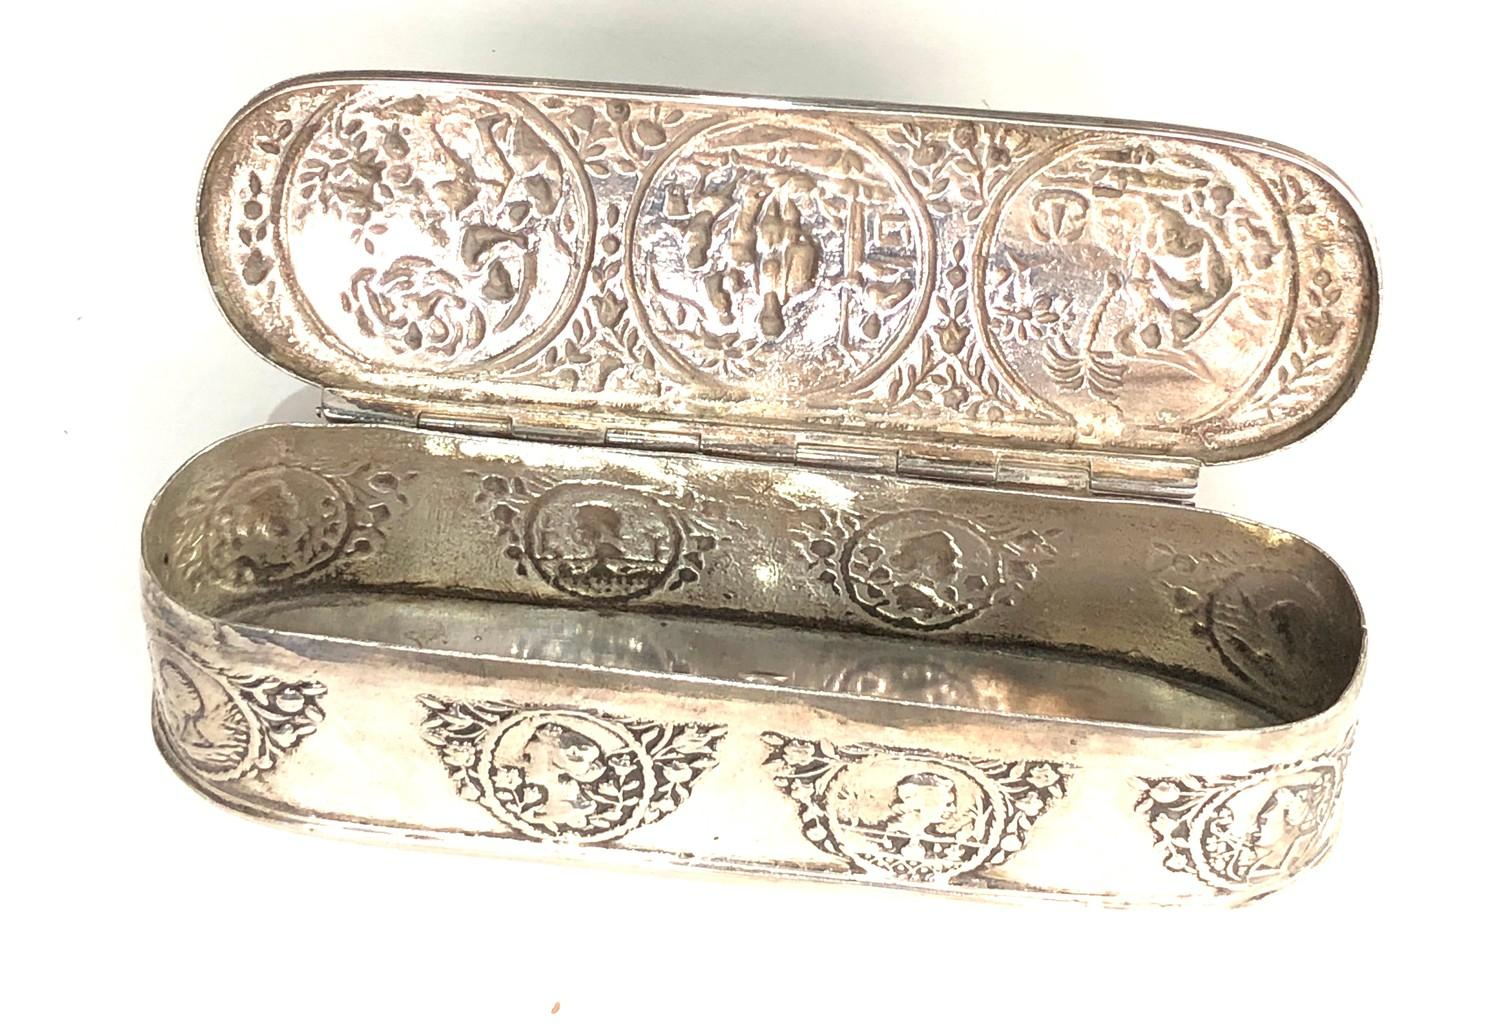 Antique Dutch silver tobacco box the hinged cover chased with scenes measures approx 16cm by 5cm 3. - Image 4 of 14